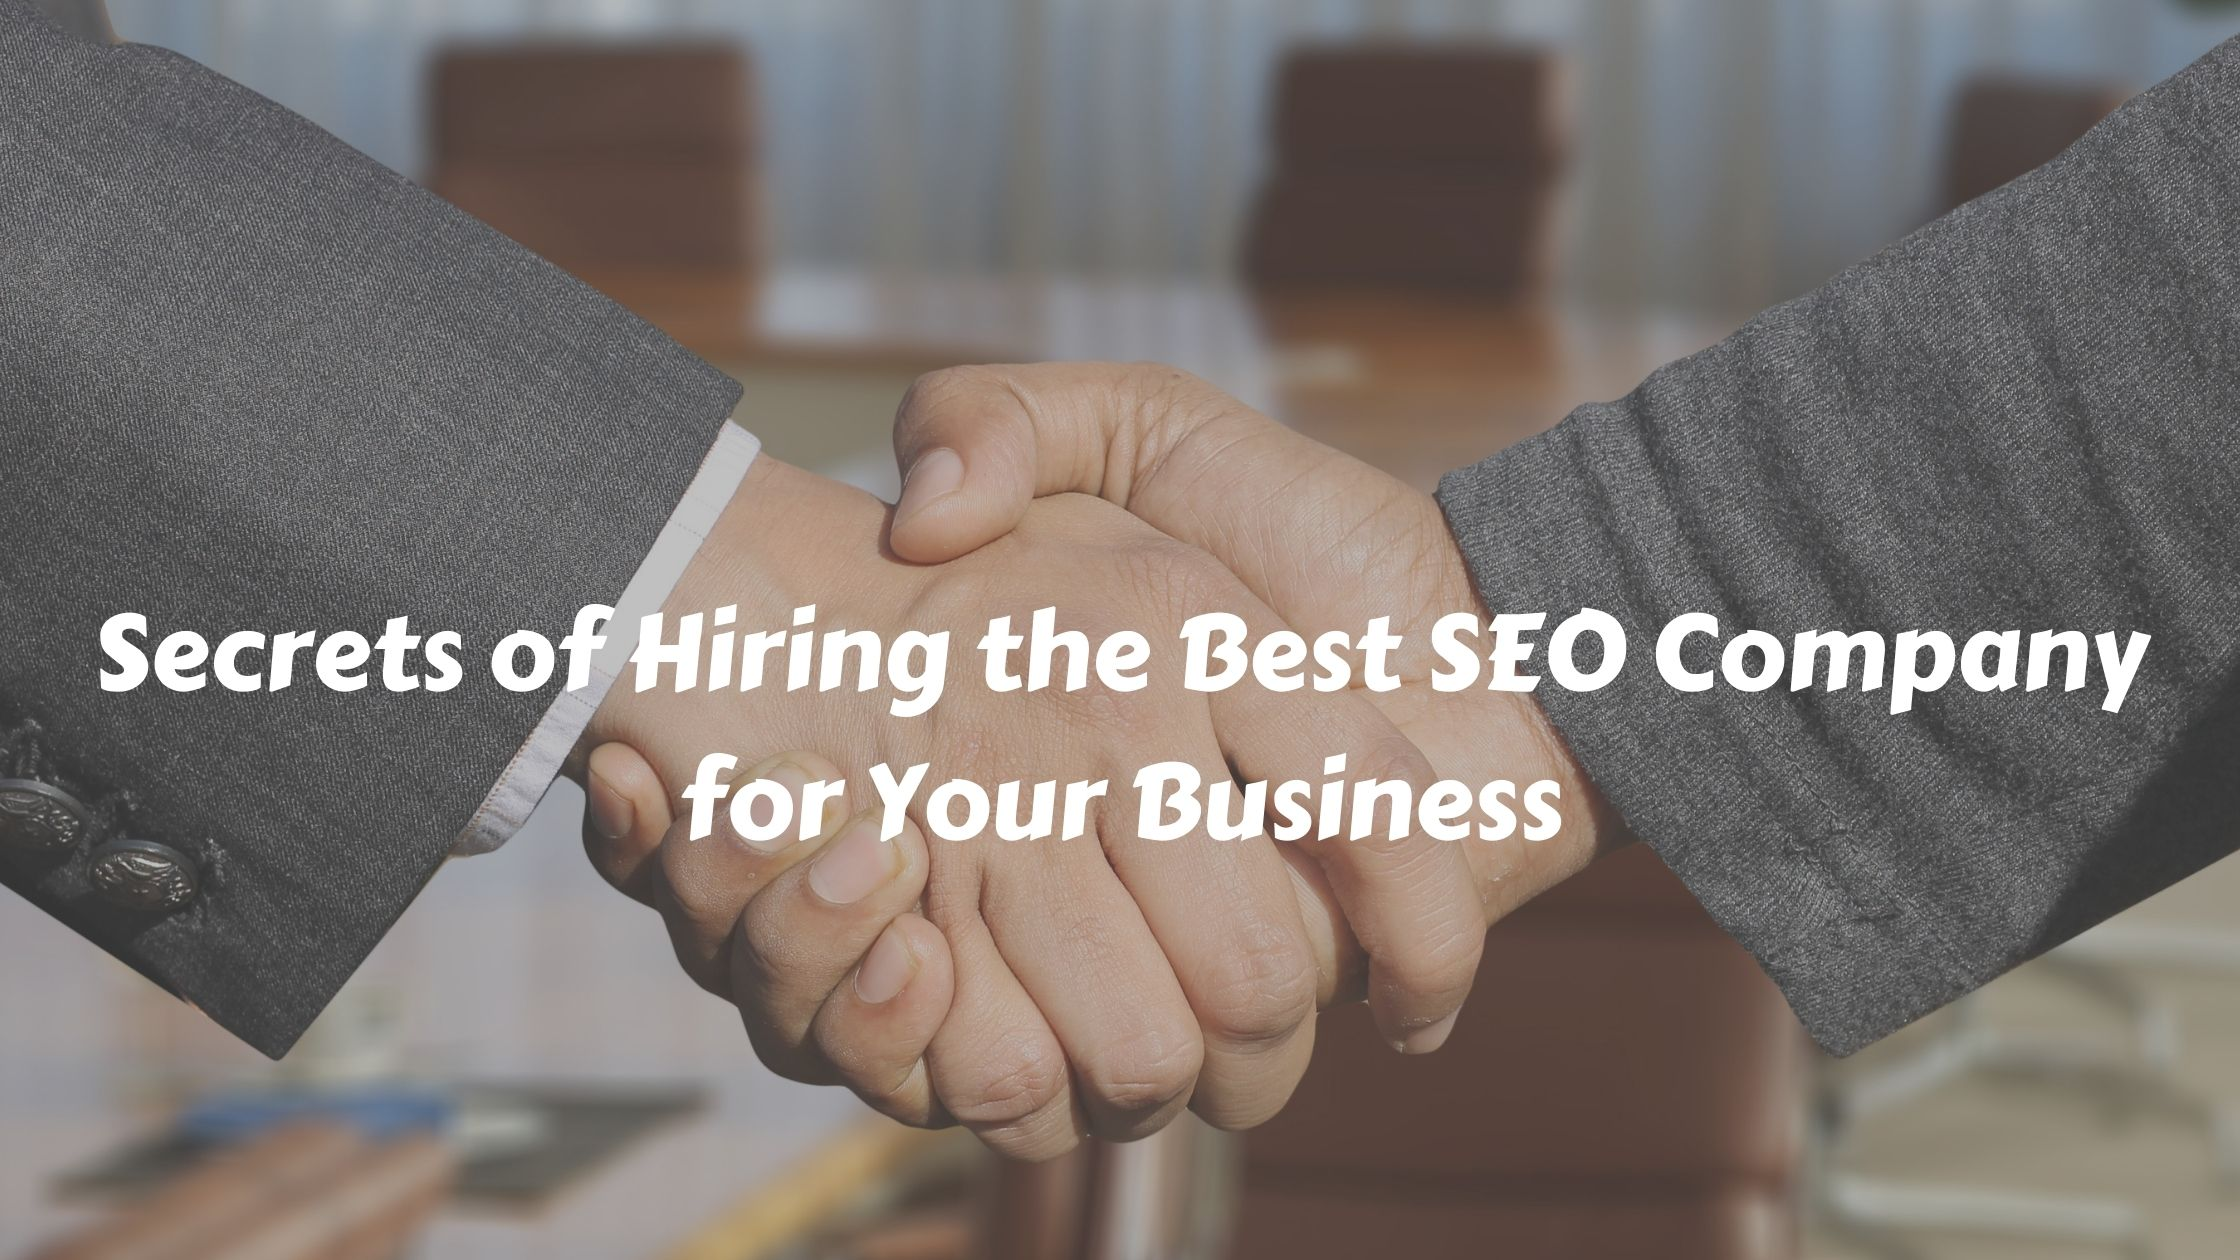 Secrets_of_Hiring_the_Best_SEO_Company_for_Your_Business